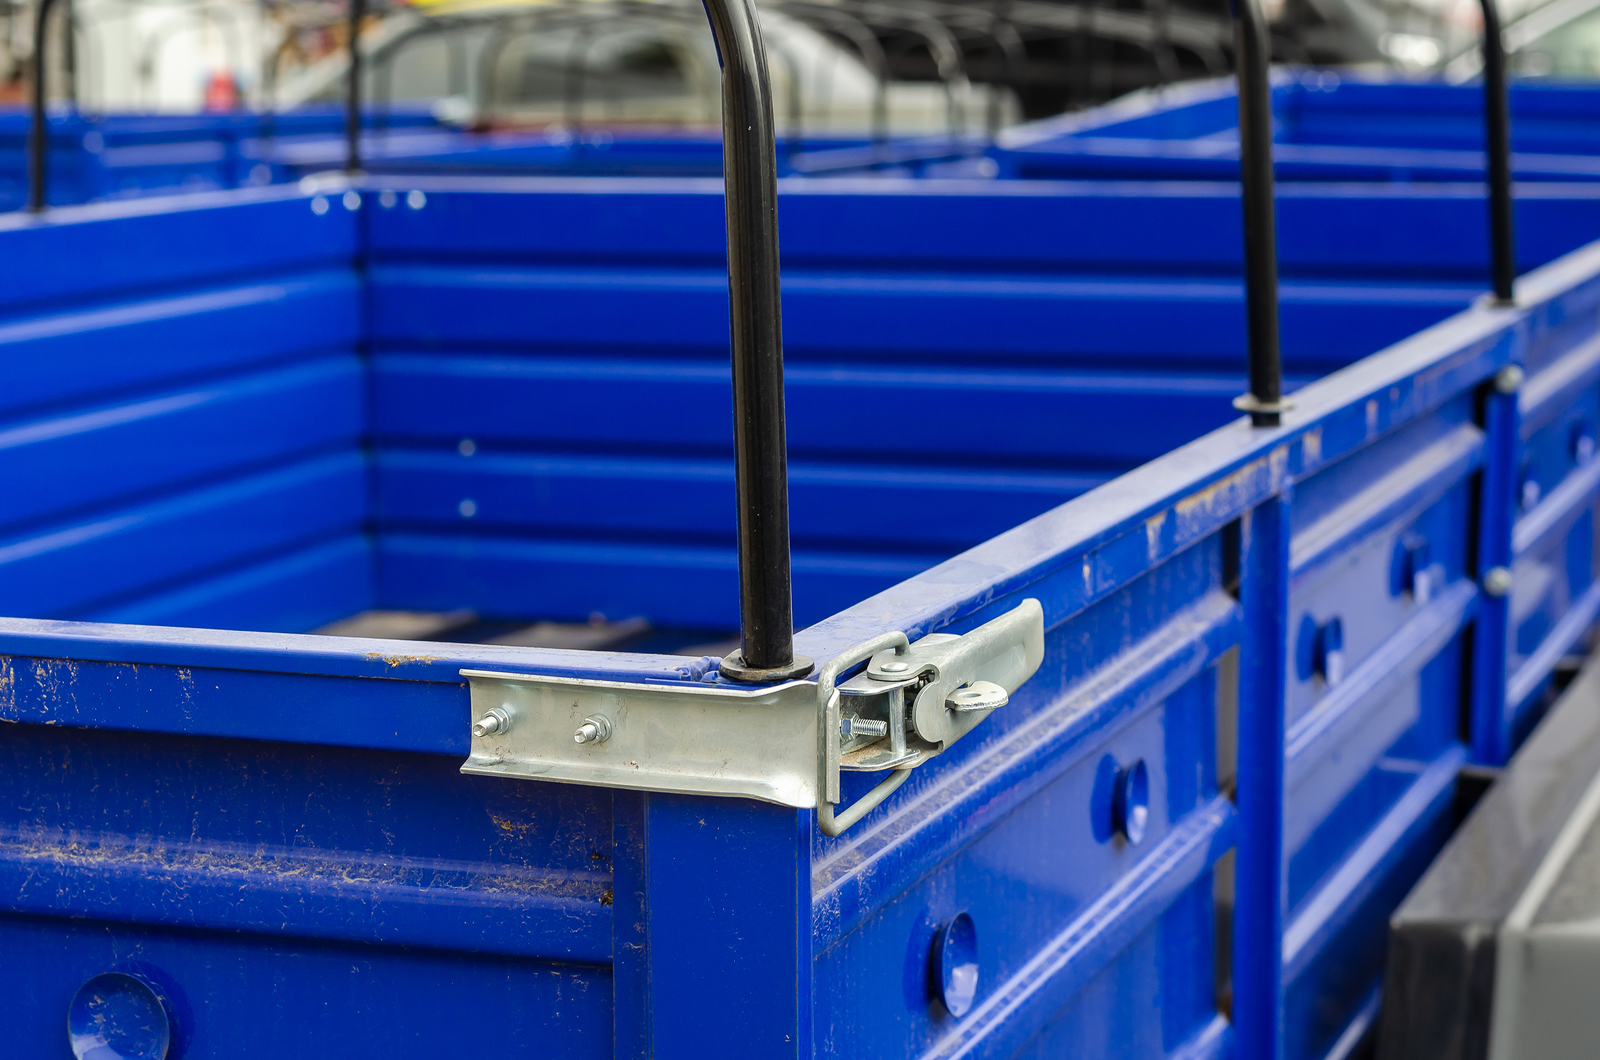 Doing More Deliveries During Business Lockdowns? Here's How to Choose the Right Size Trailer